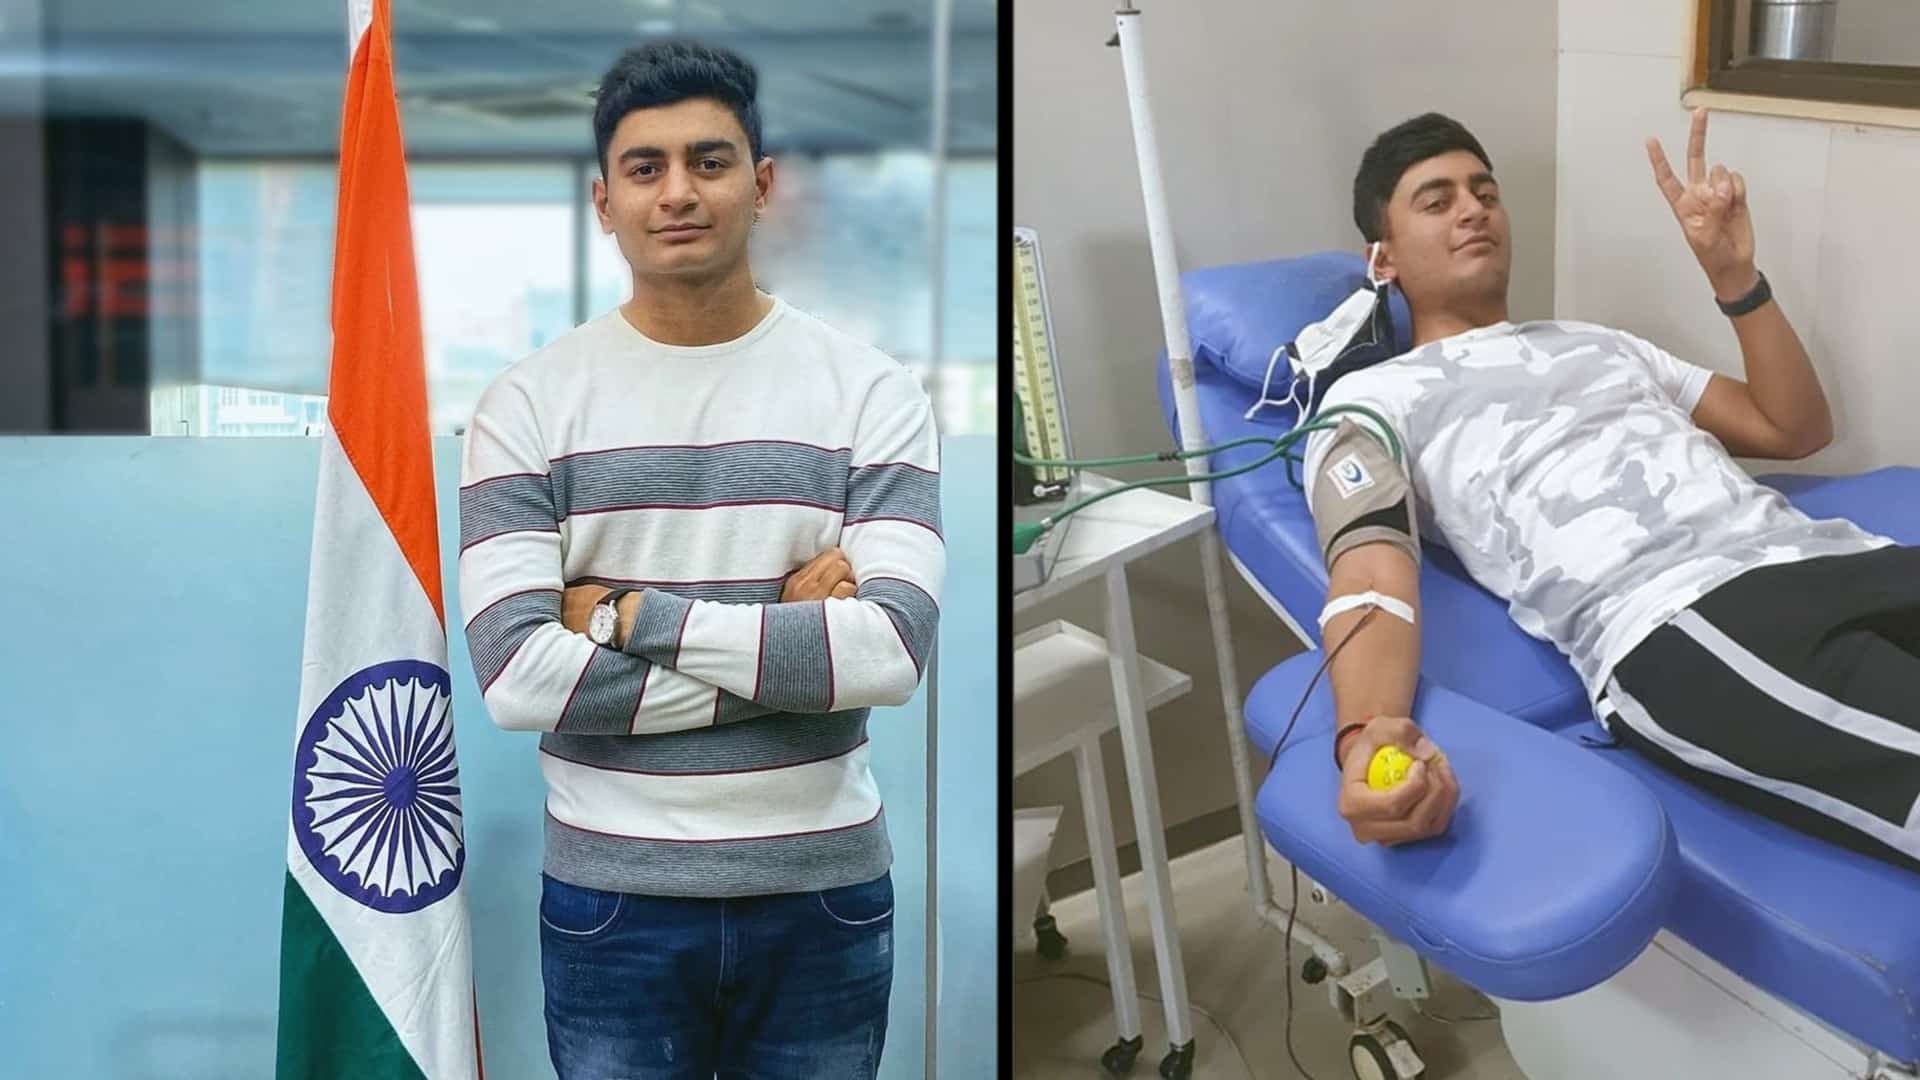 19-year-old Indian golfer donates all his earnings to fund Covid Vaccination Drive